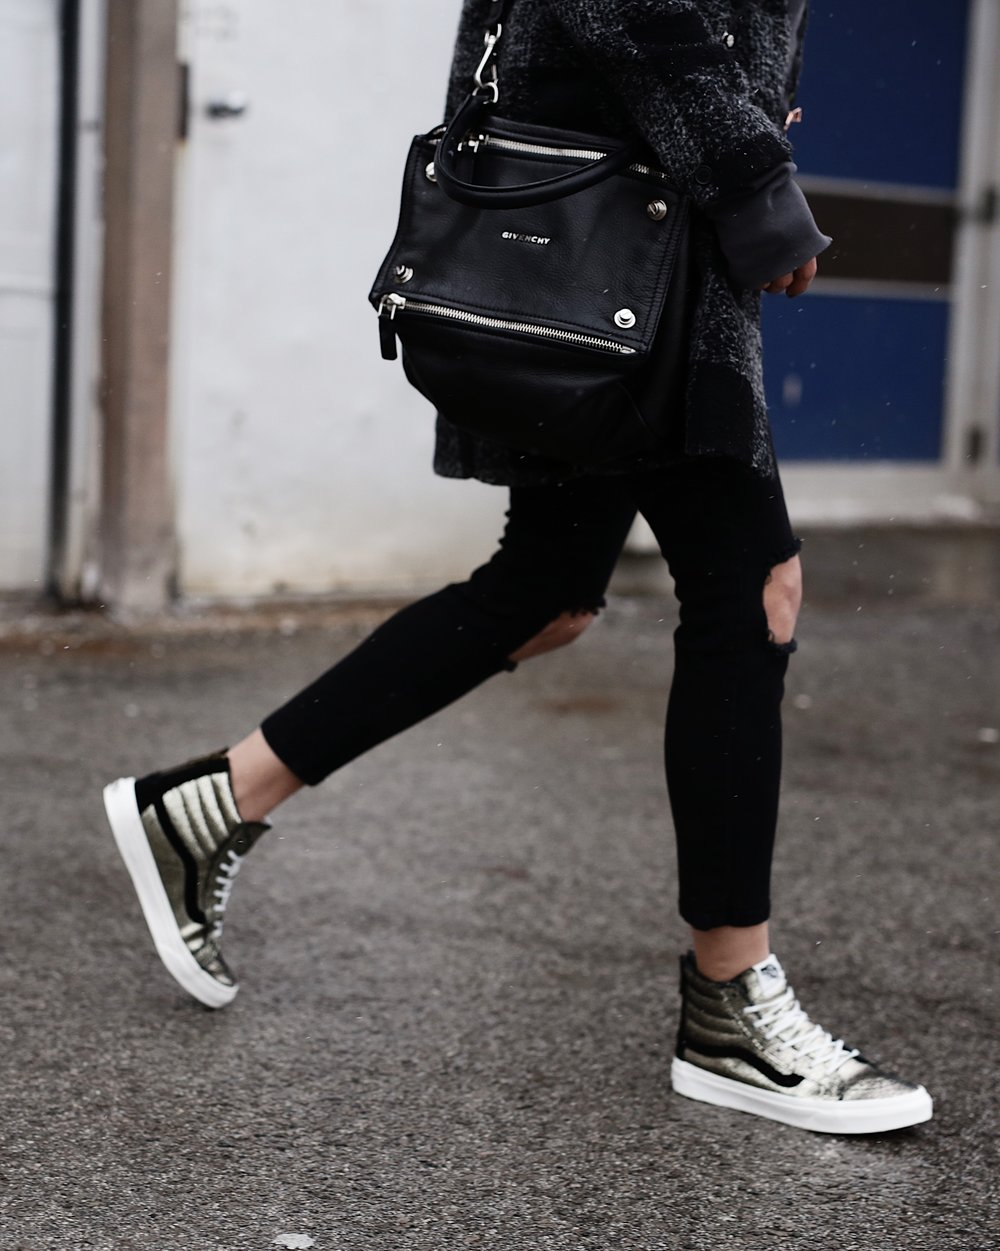 vans givenchy off 59% - www